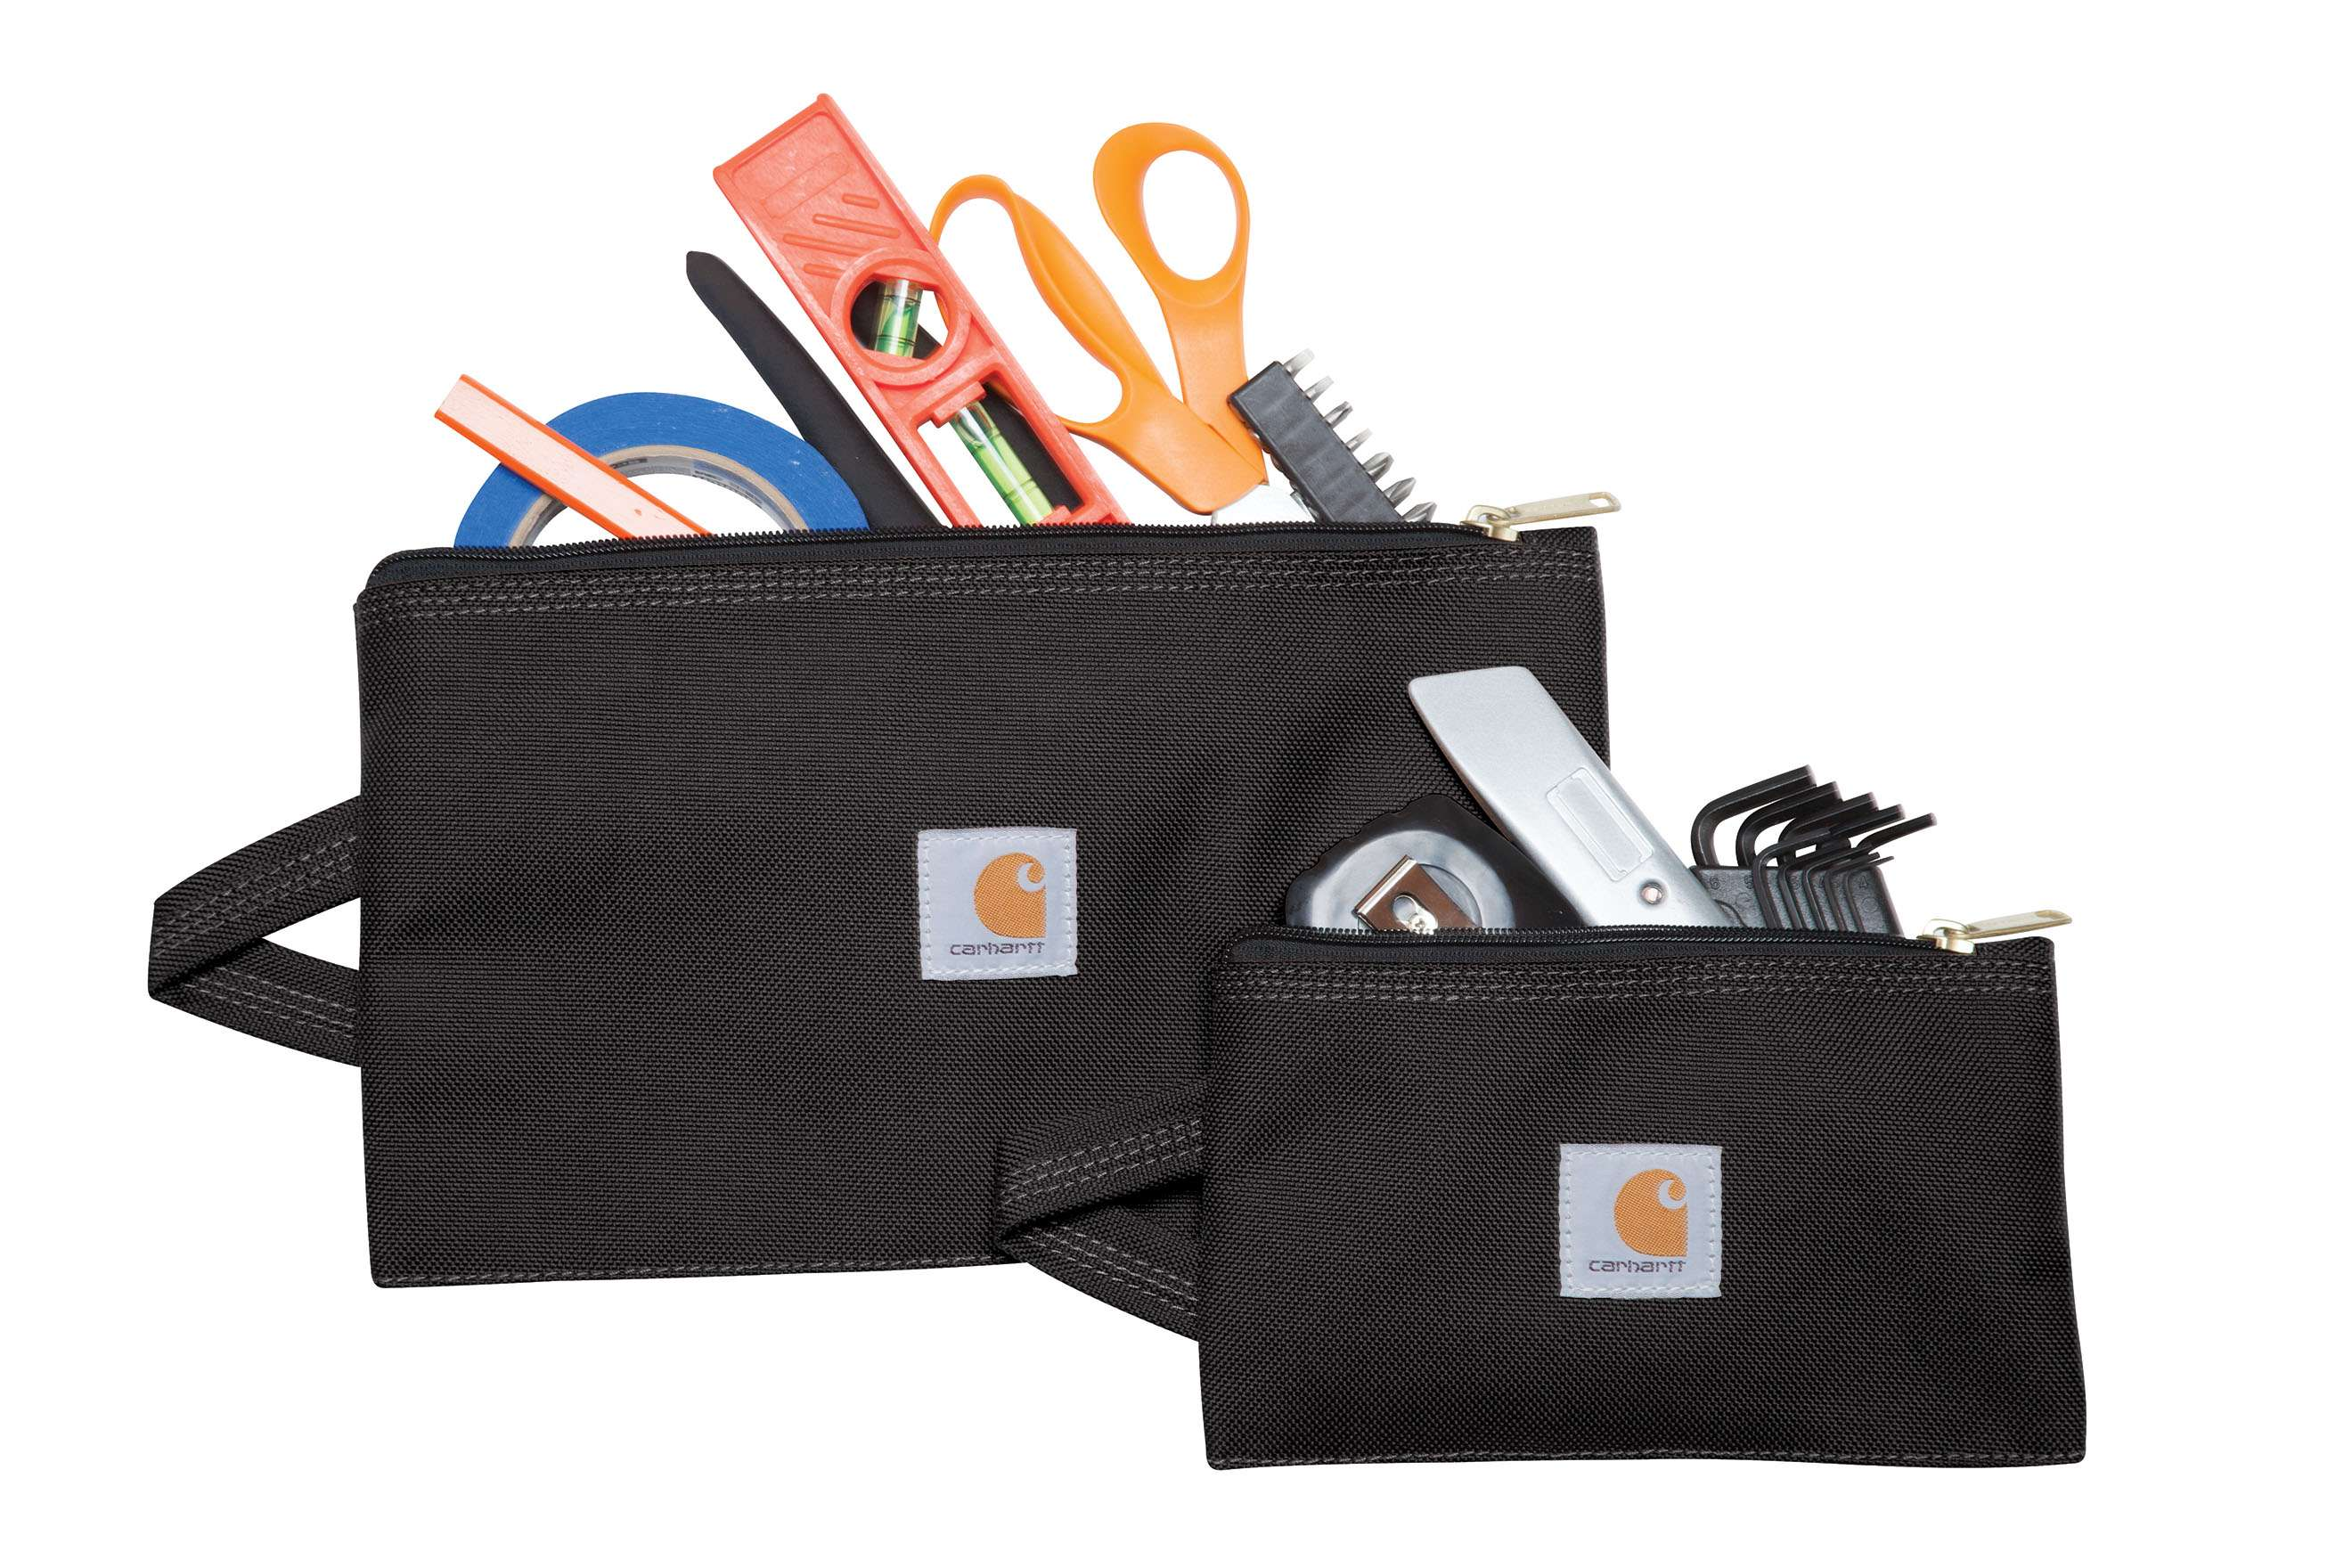 Carhartt Legacy Tool Pouches - Multi Pack